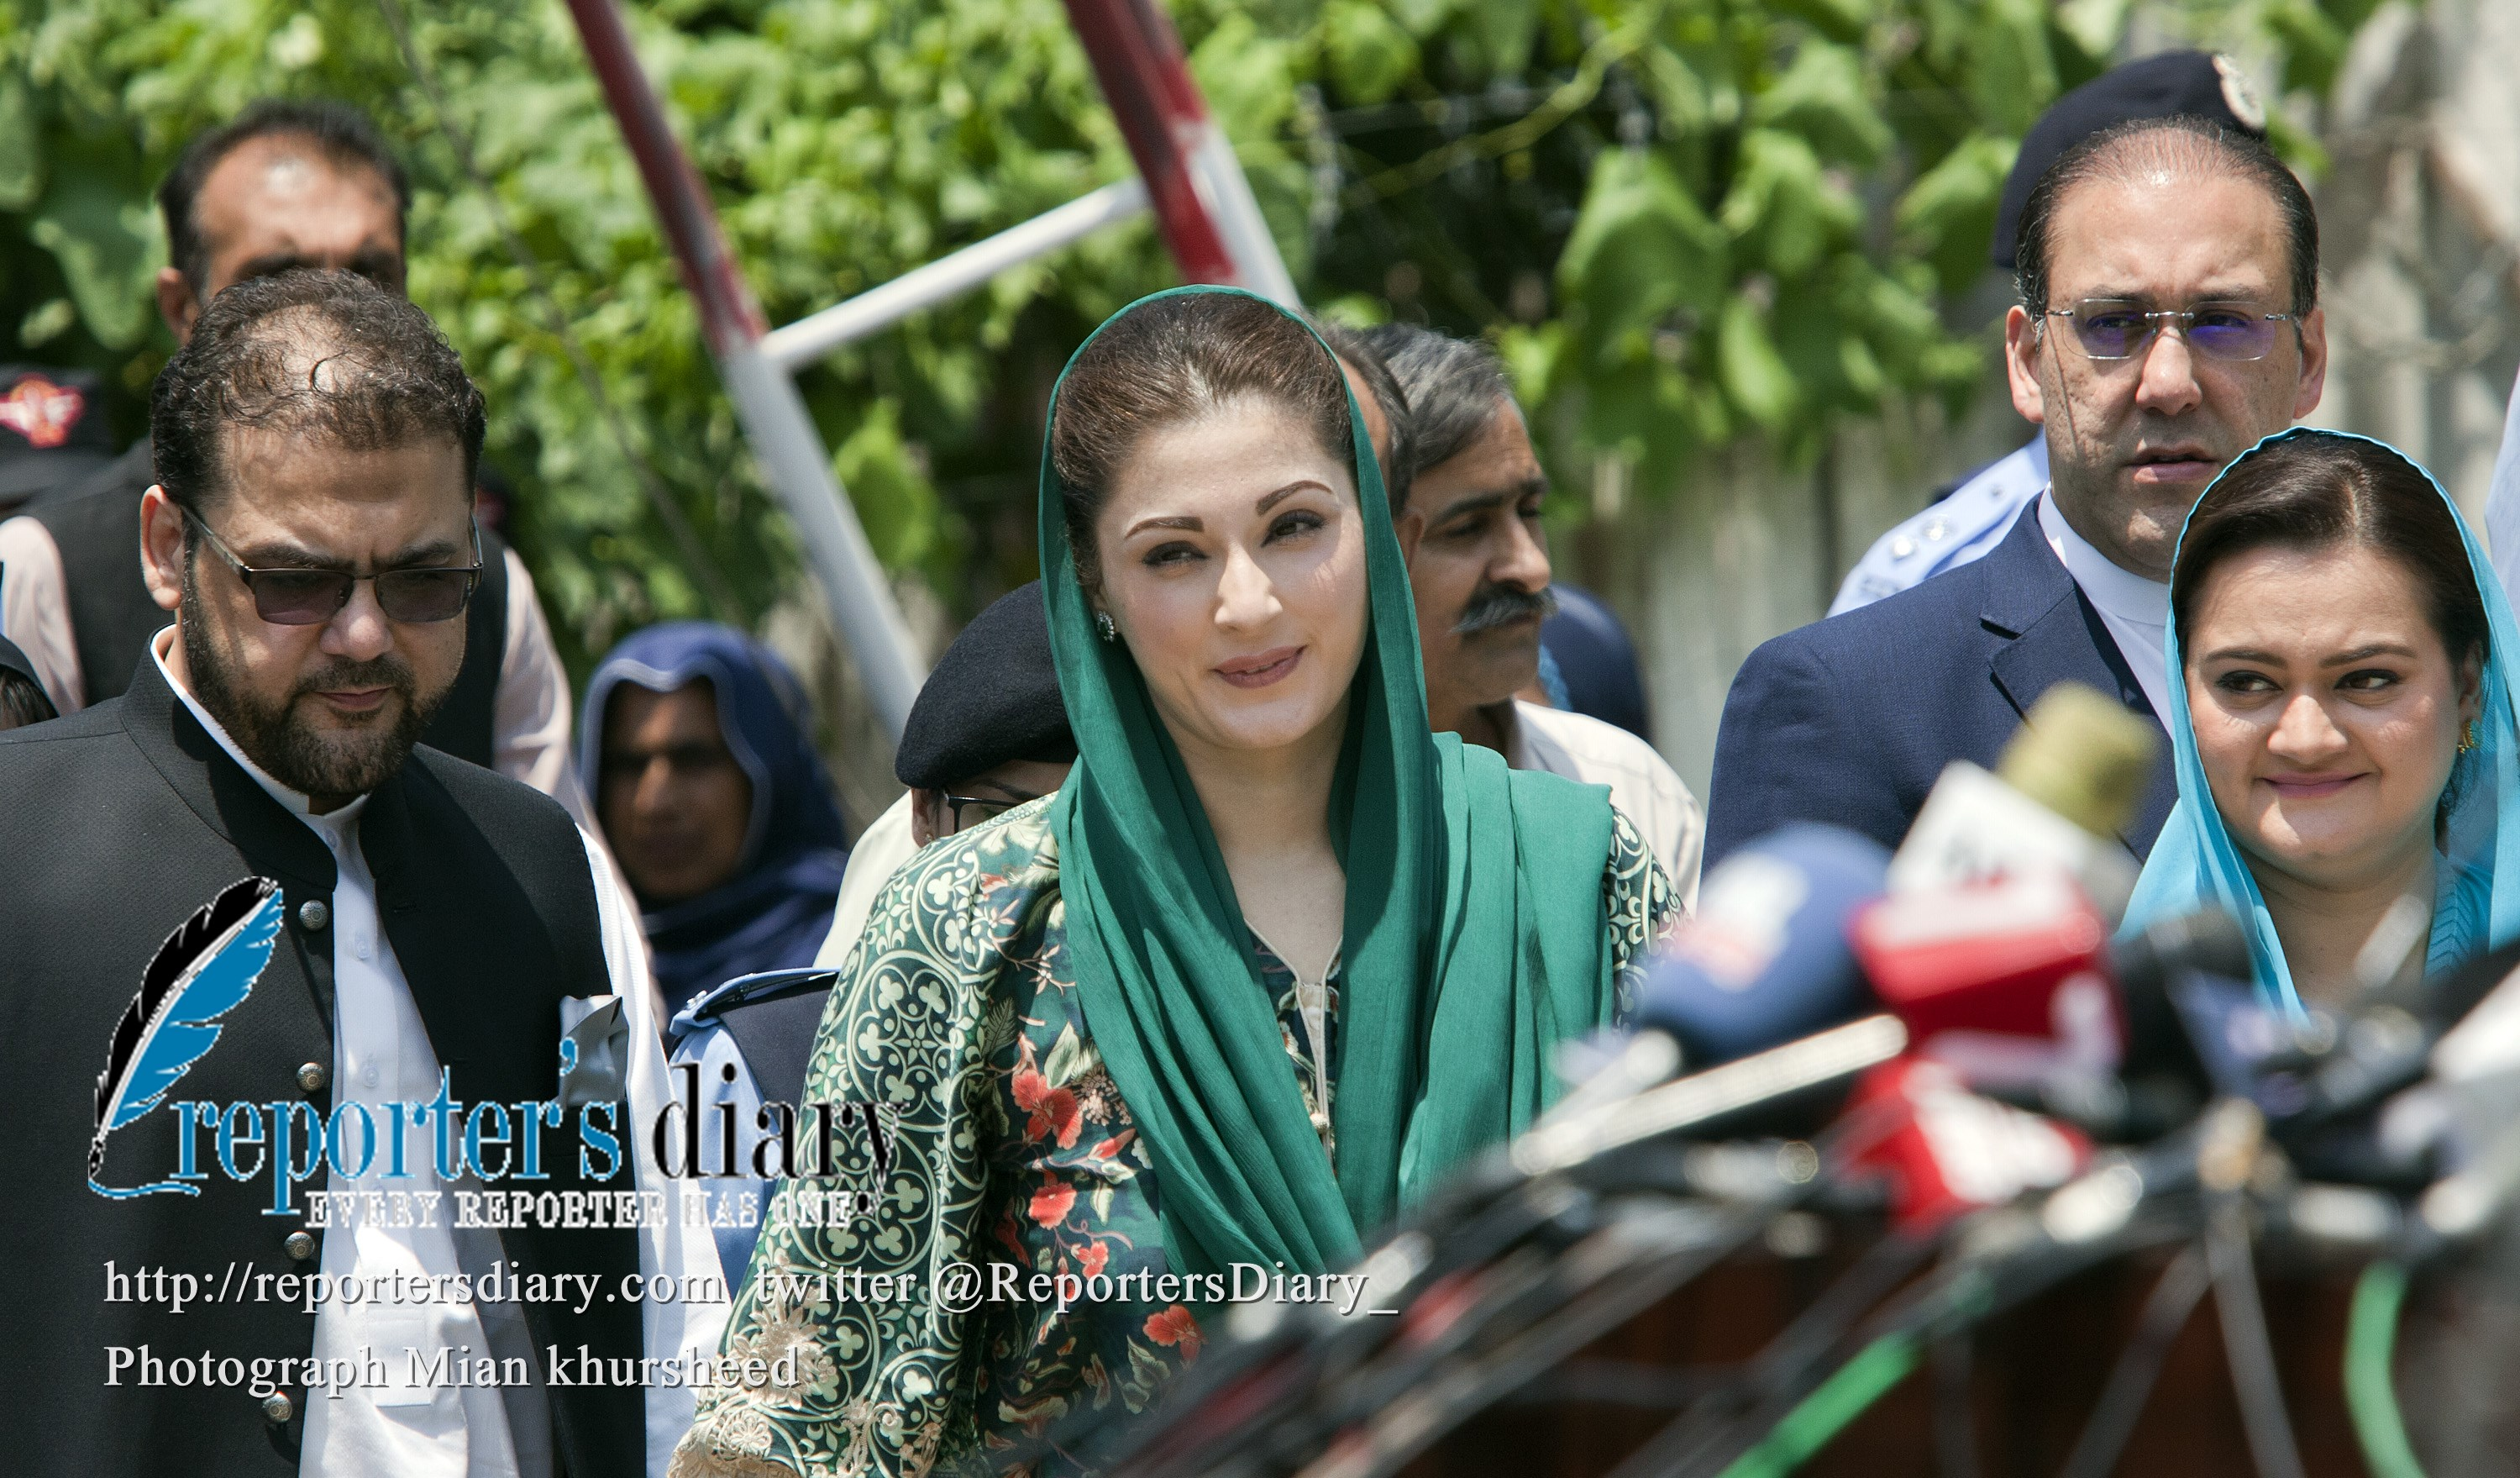 Maryam Nawaz Sharif, Prime Minister Nawaz Sharif's daughter, appeared on Wednesday for the first time before the JIT